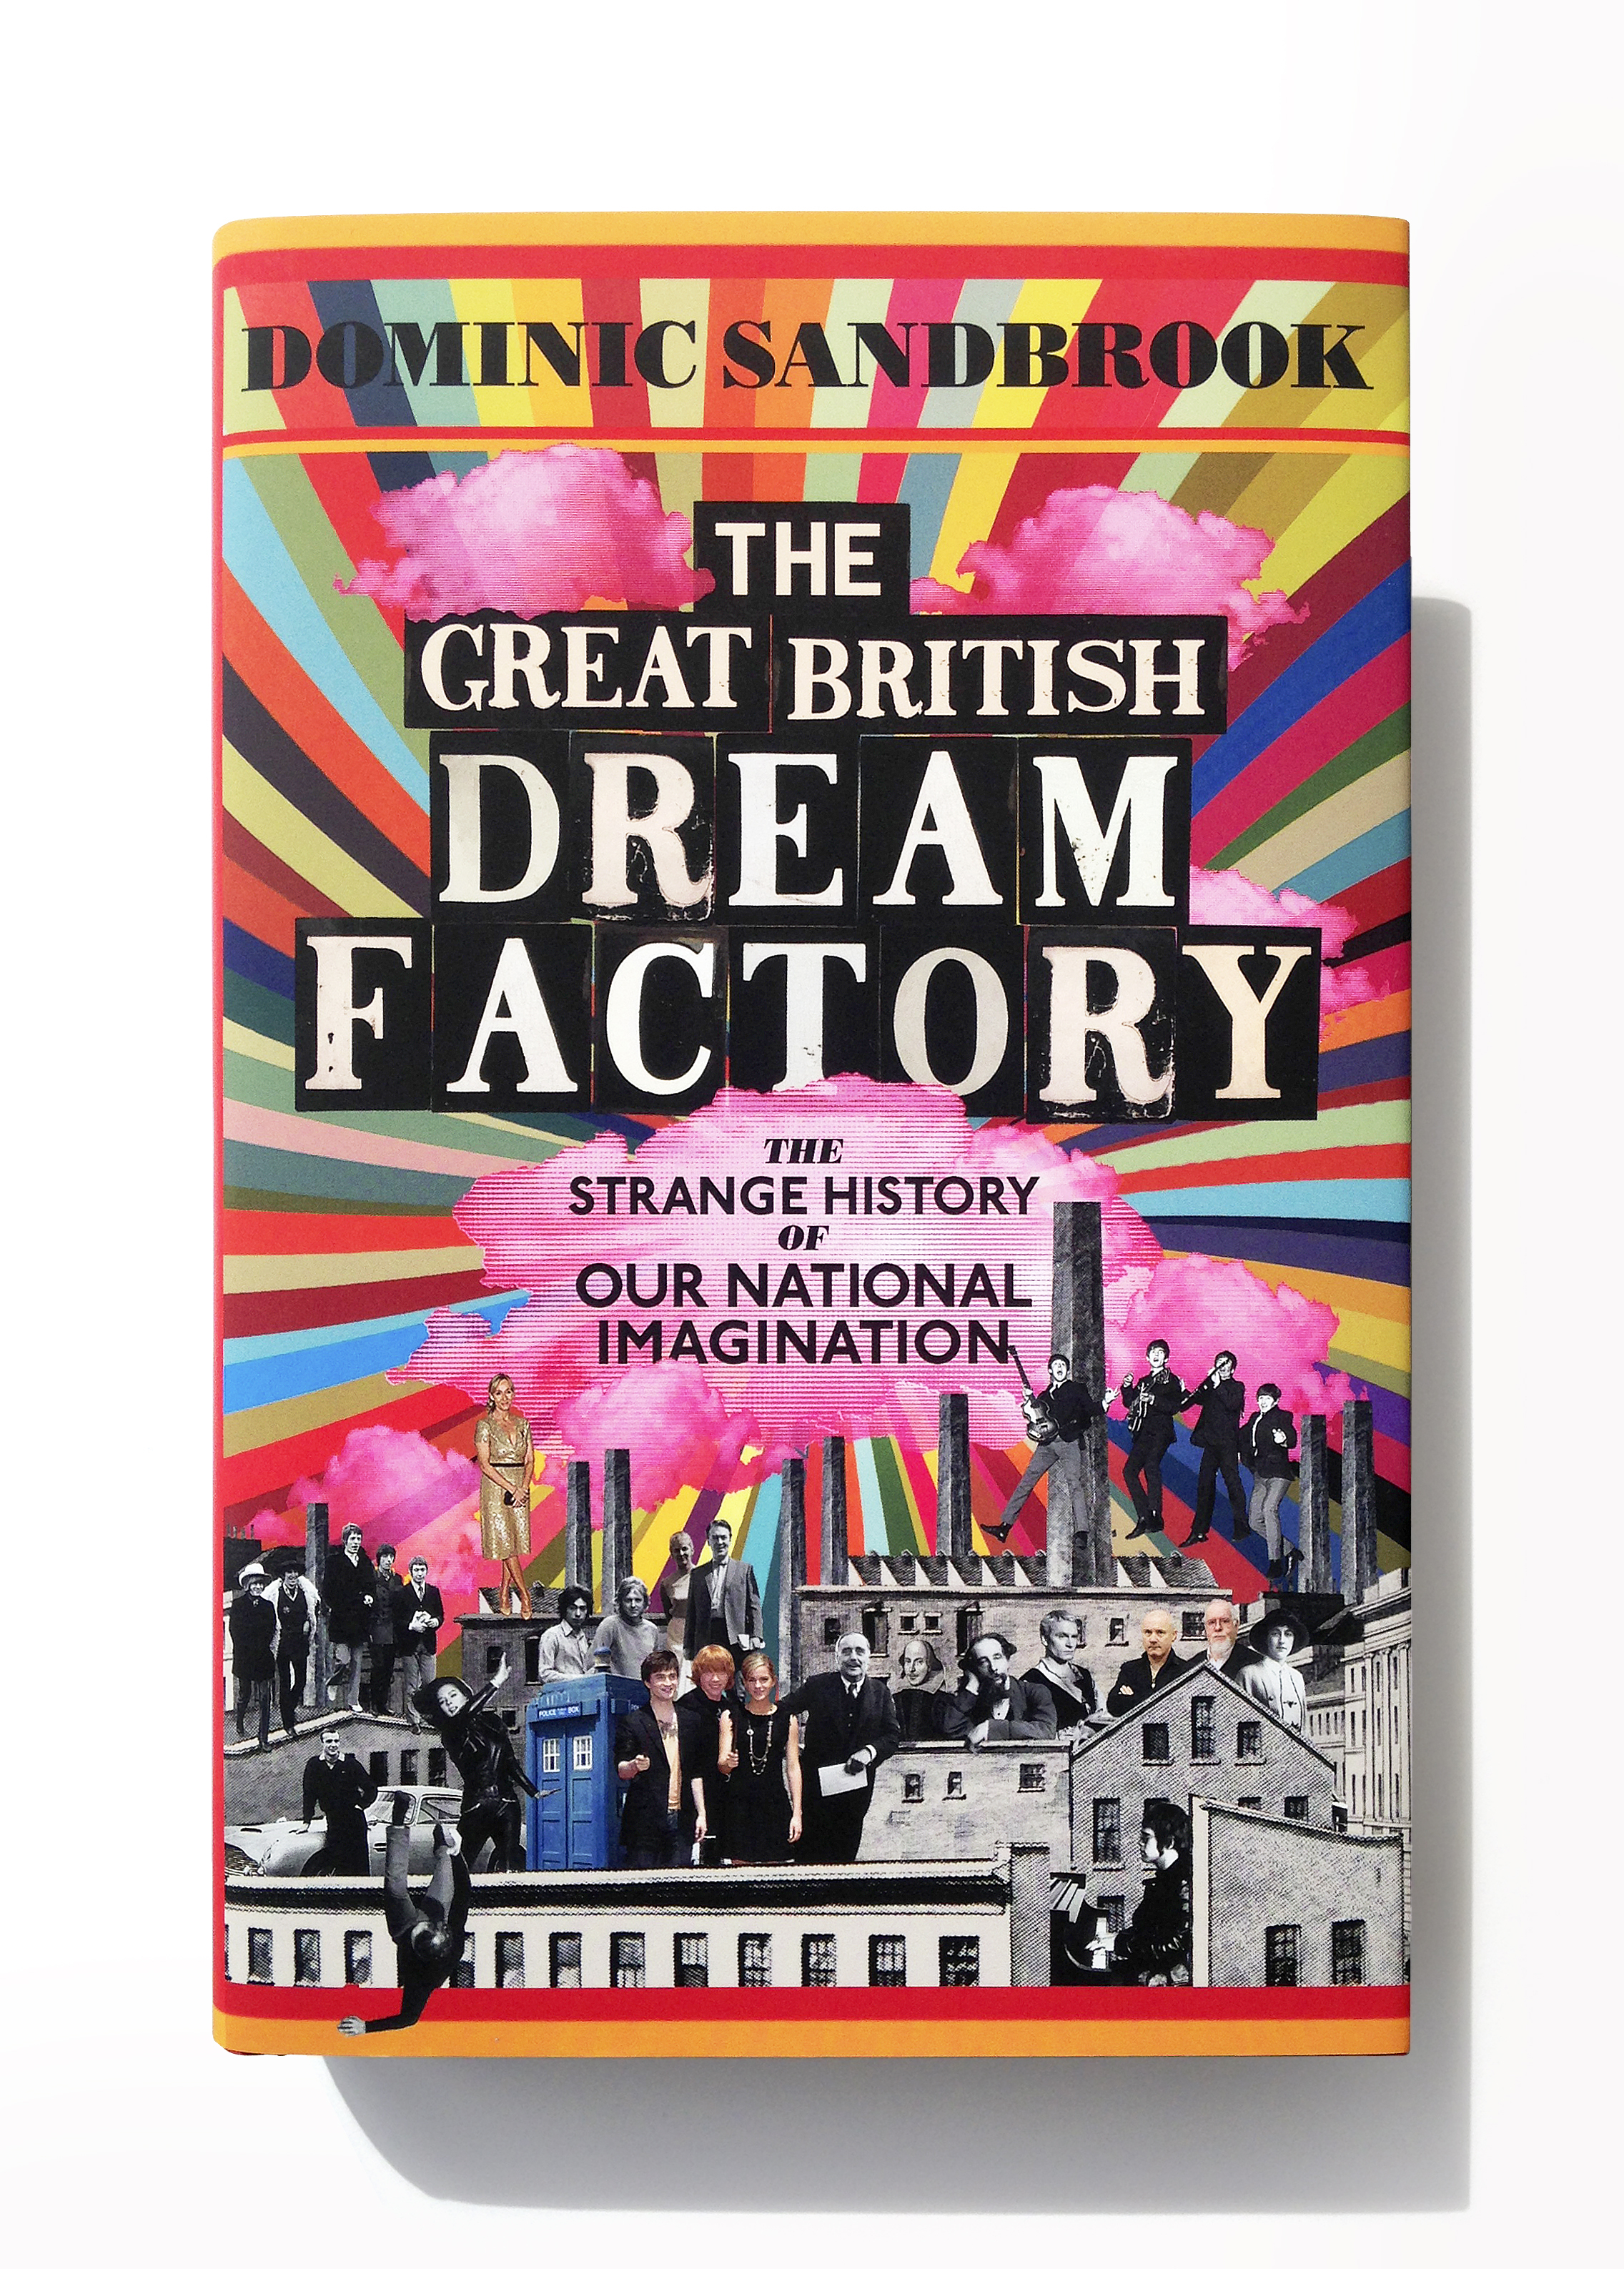 The Great British Dream Factory by Dominic Sandbrook - Design: Jim Stoddart